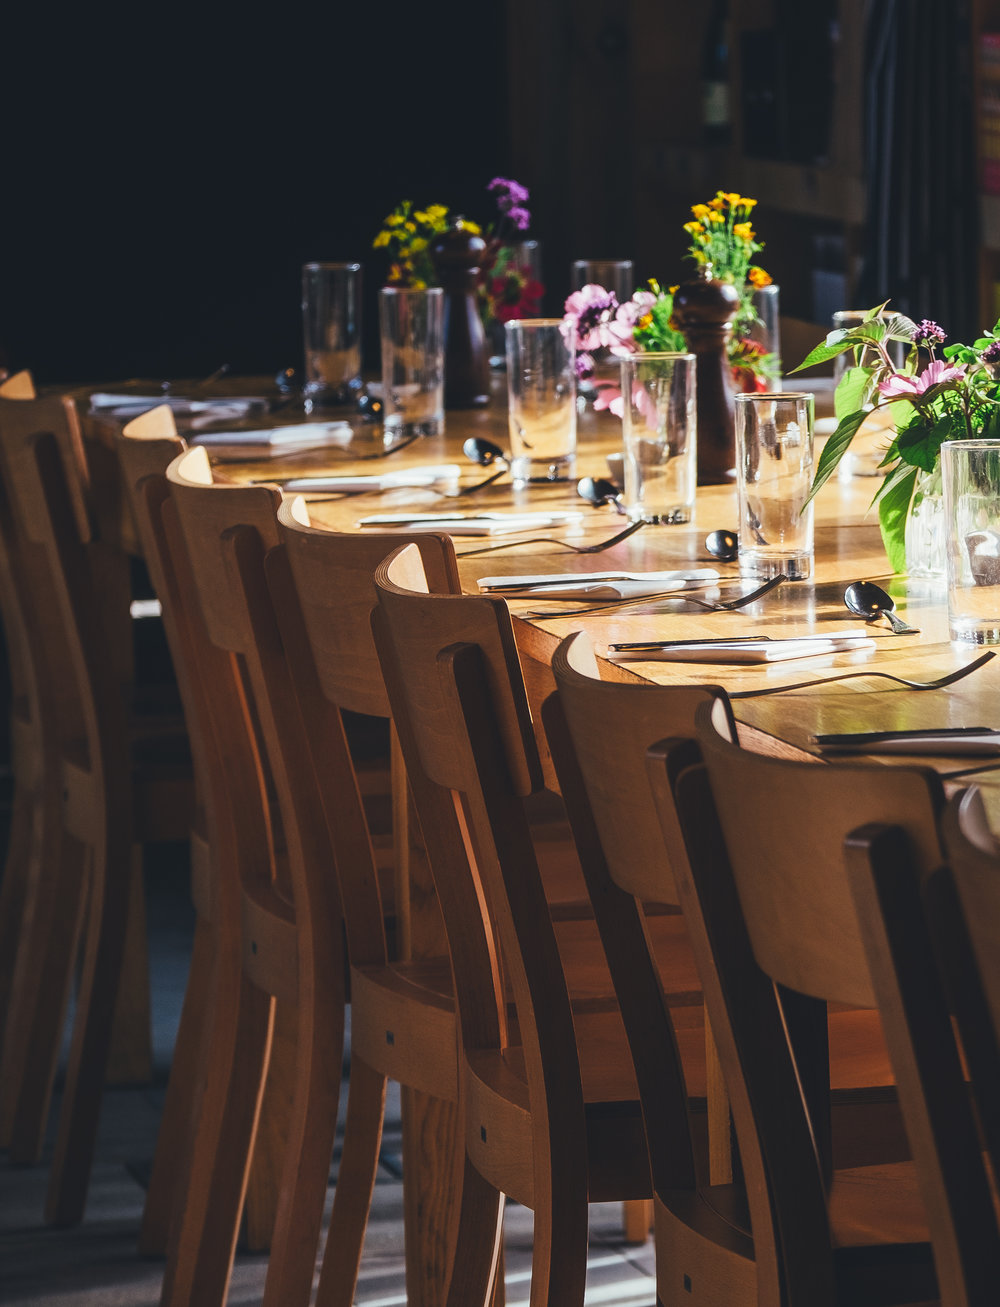 Best rehearsal dinner locations in Portland, Maine | Photo courtesy Unsplash